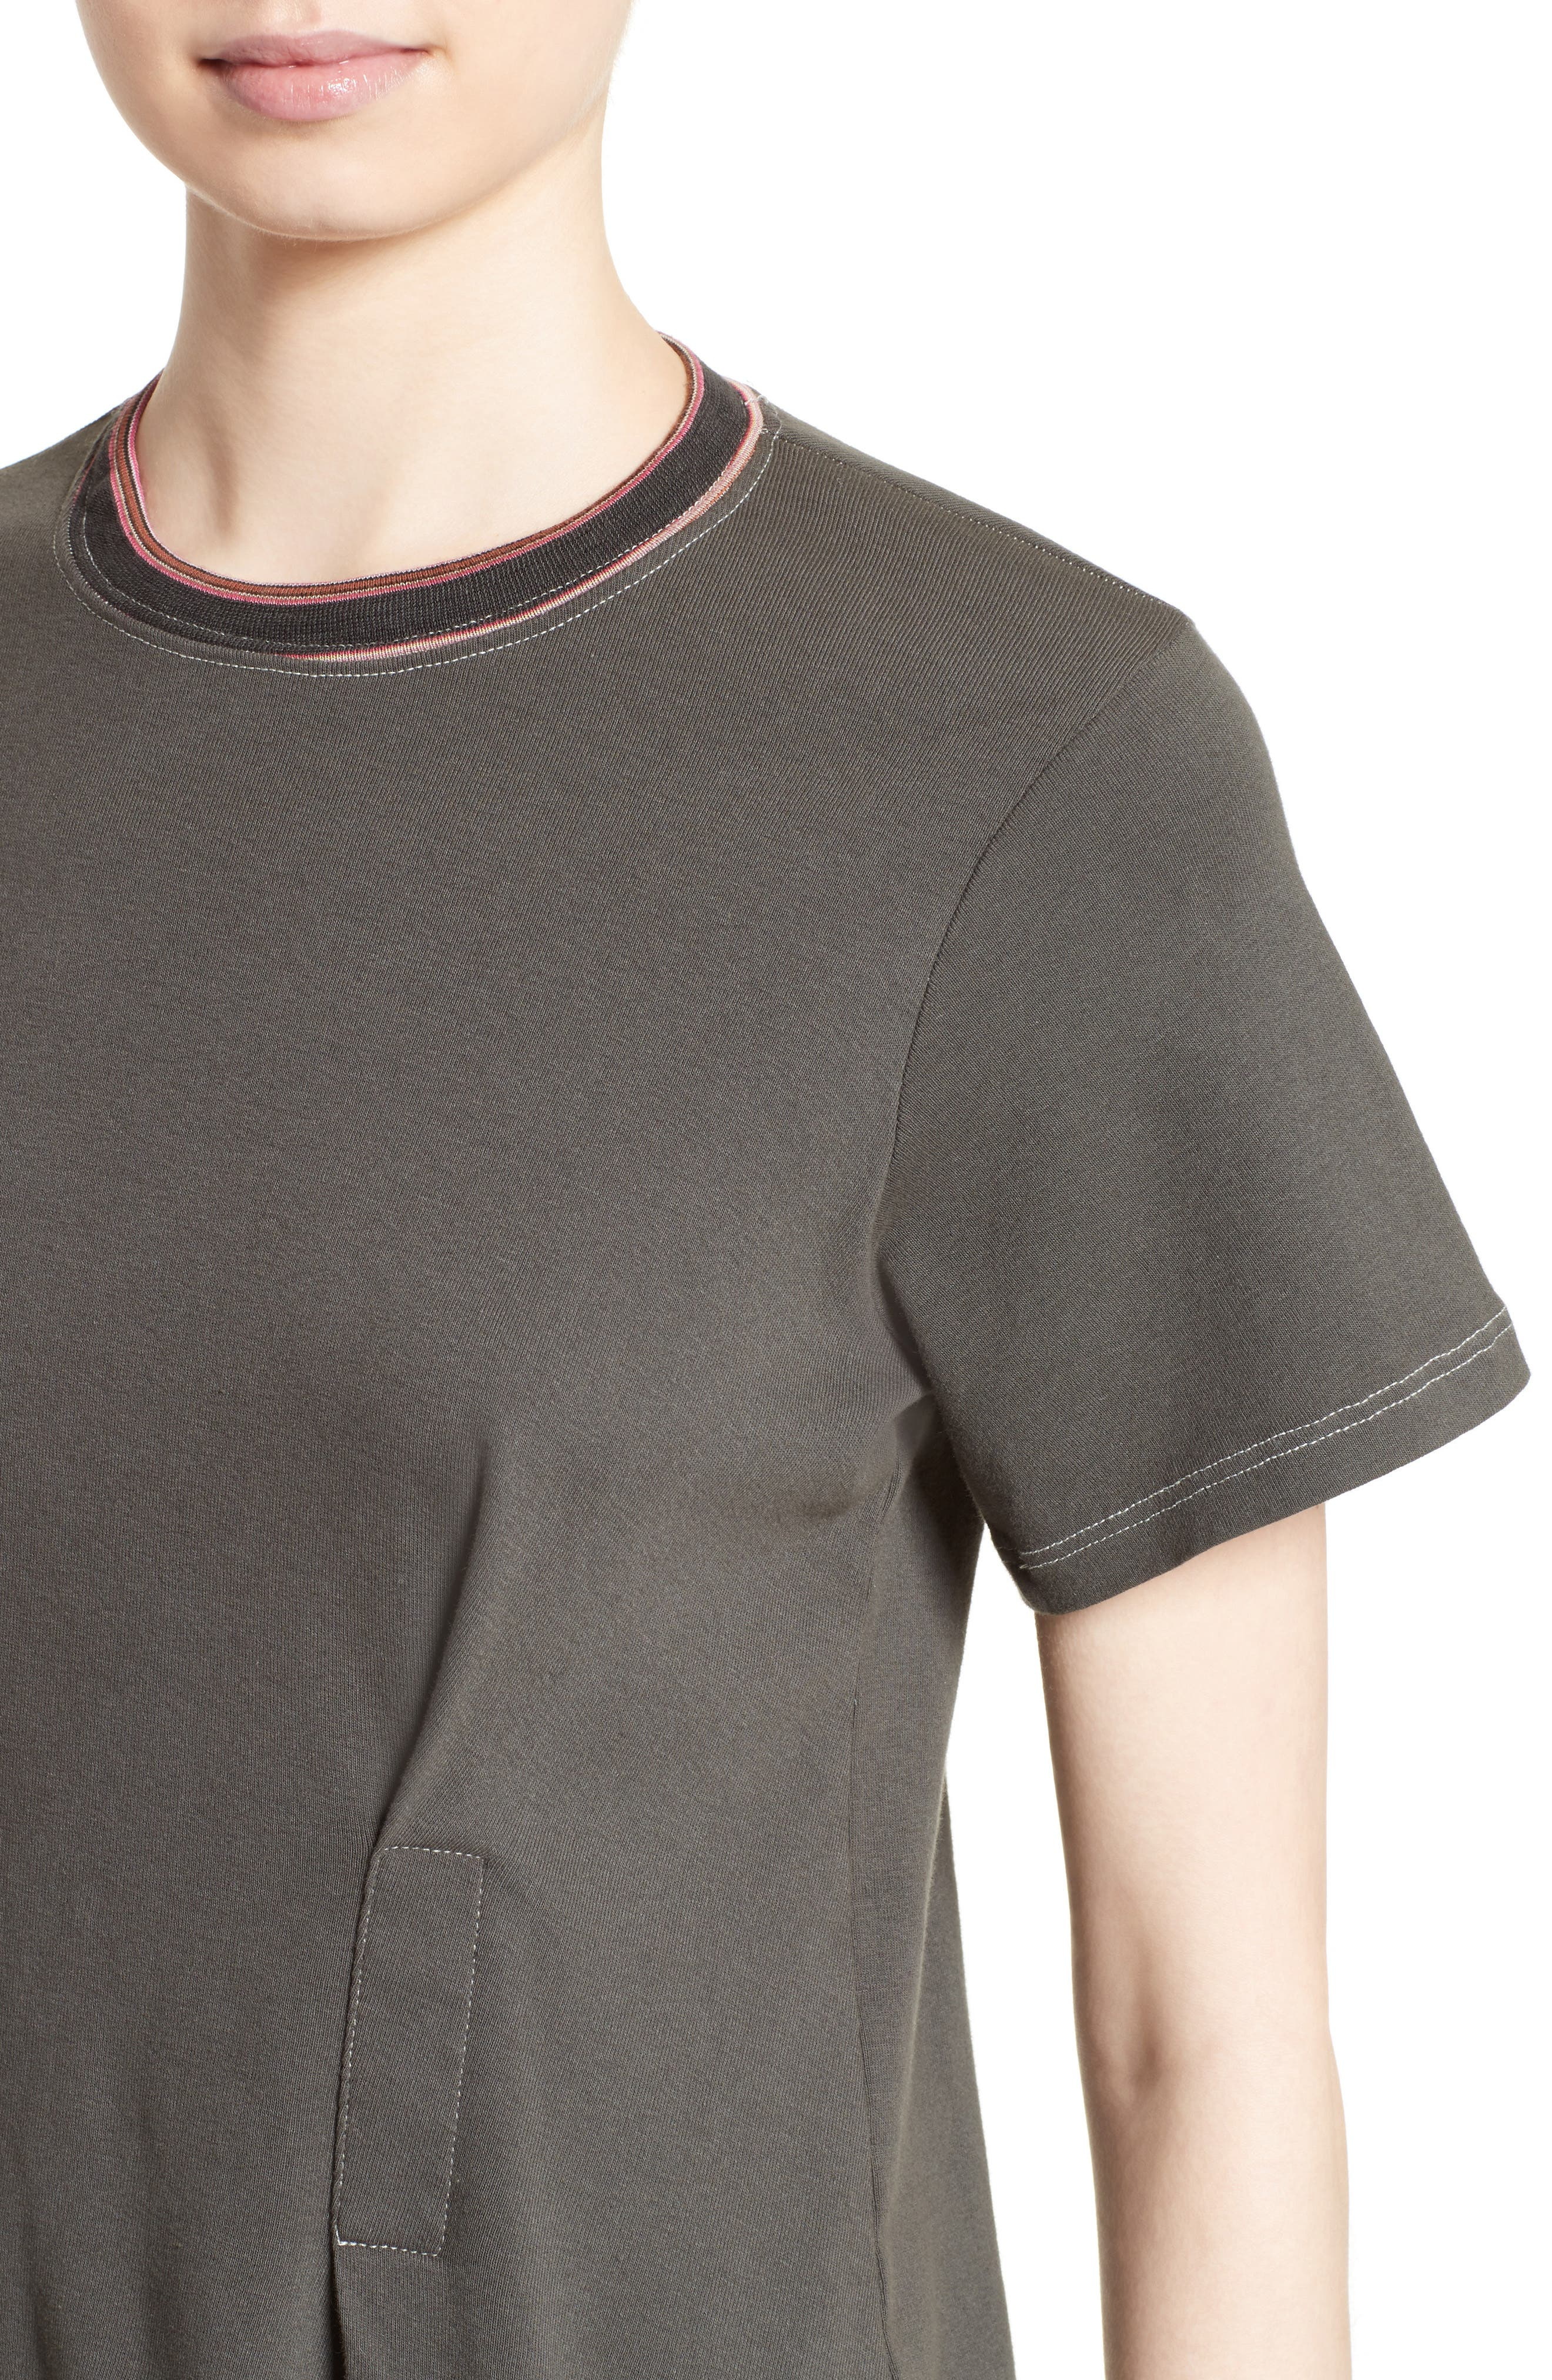 Top Stitch Tee,                             Alternate thumbnail 6, color,                             Off Black